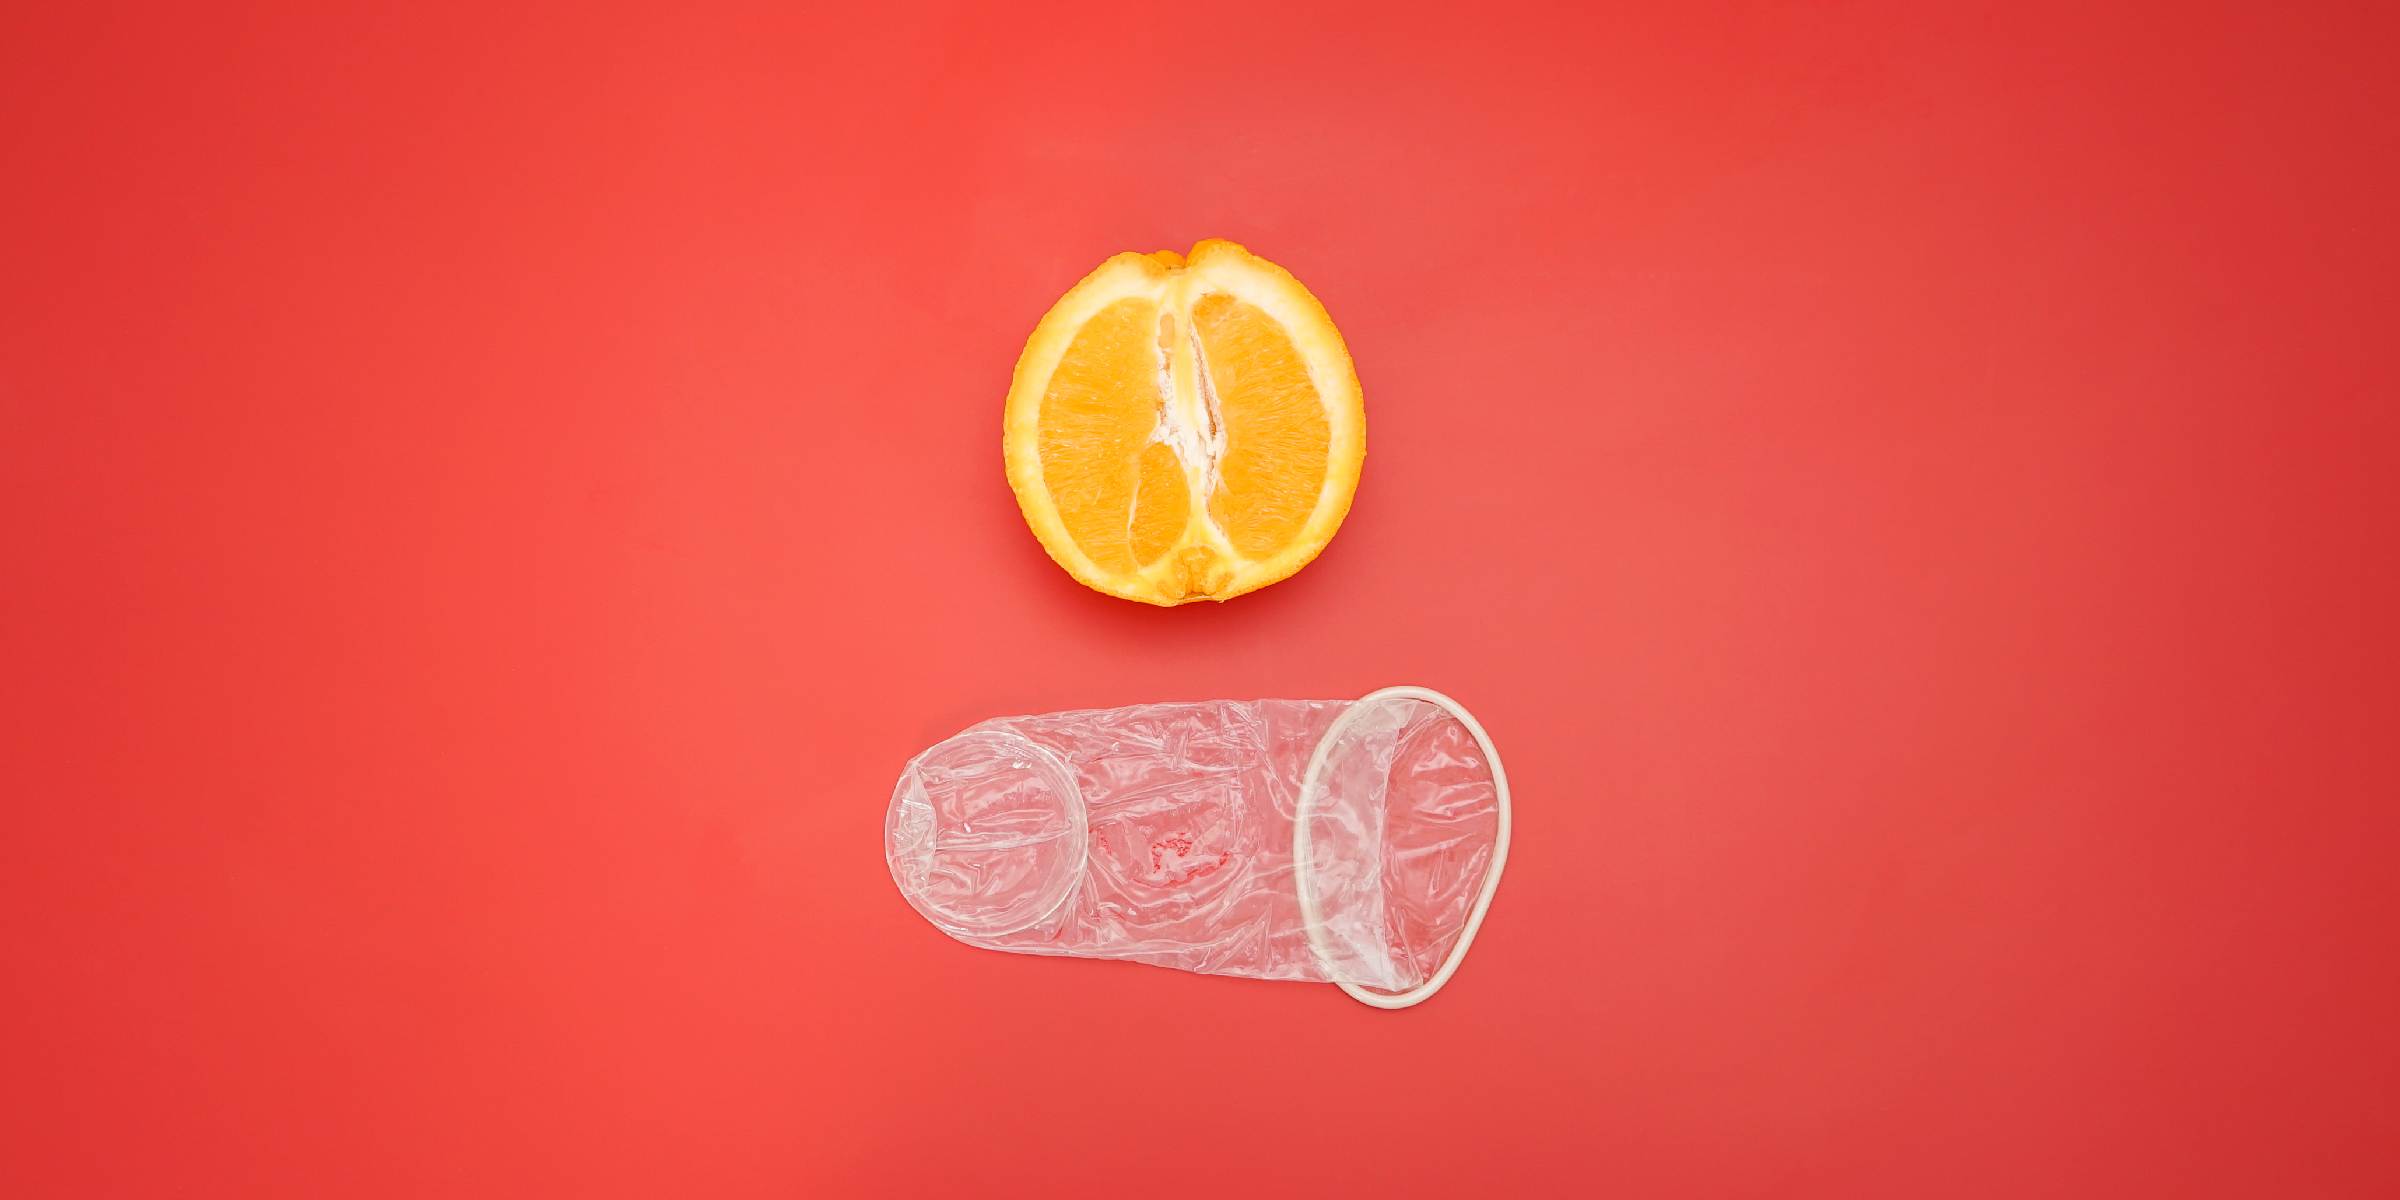 An unpacked female condom, shown next to an orange for size perspective.